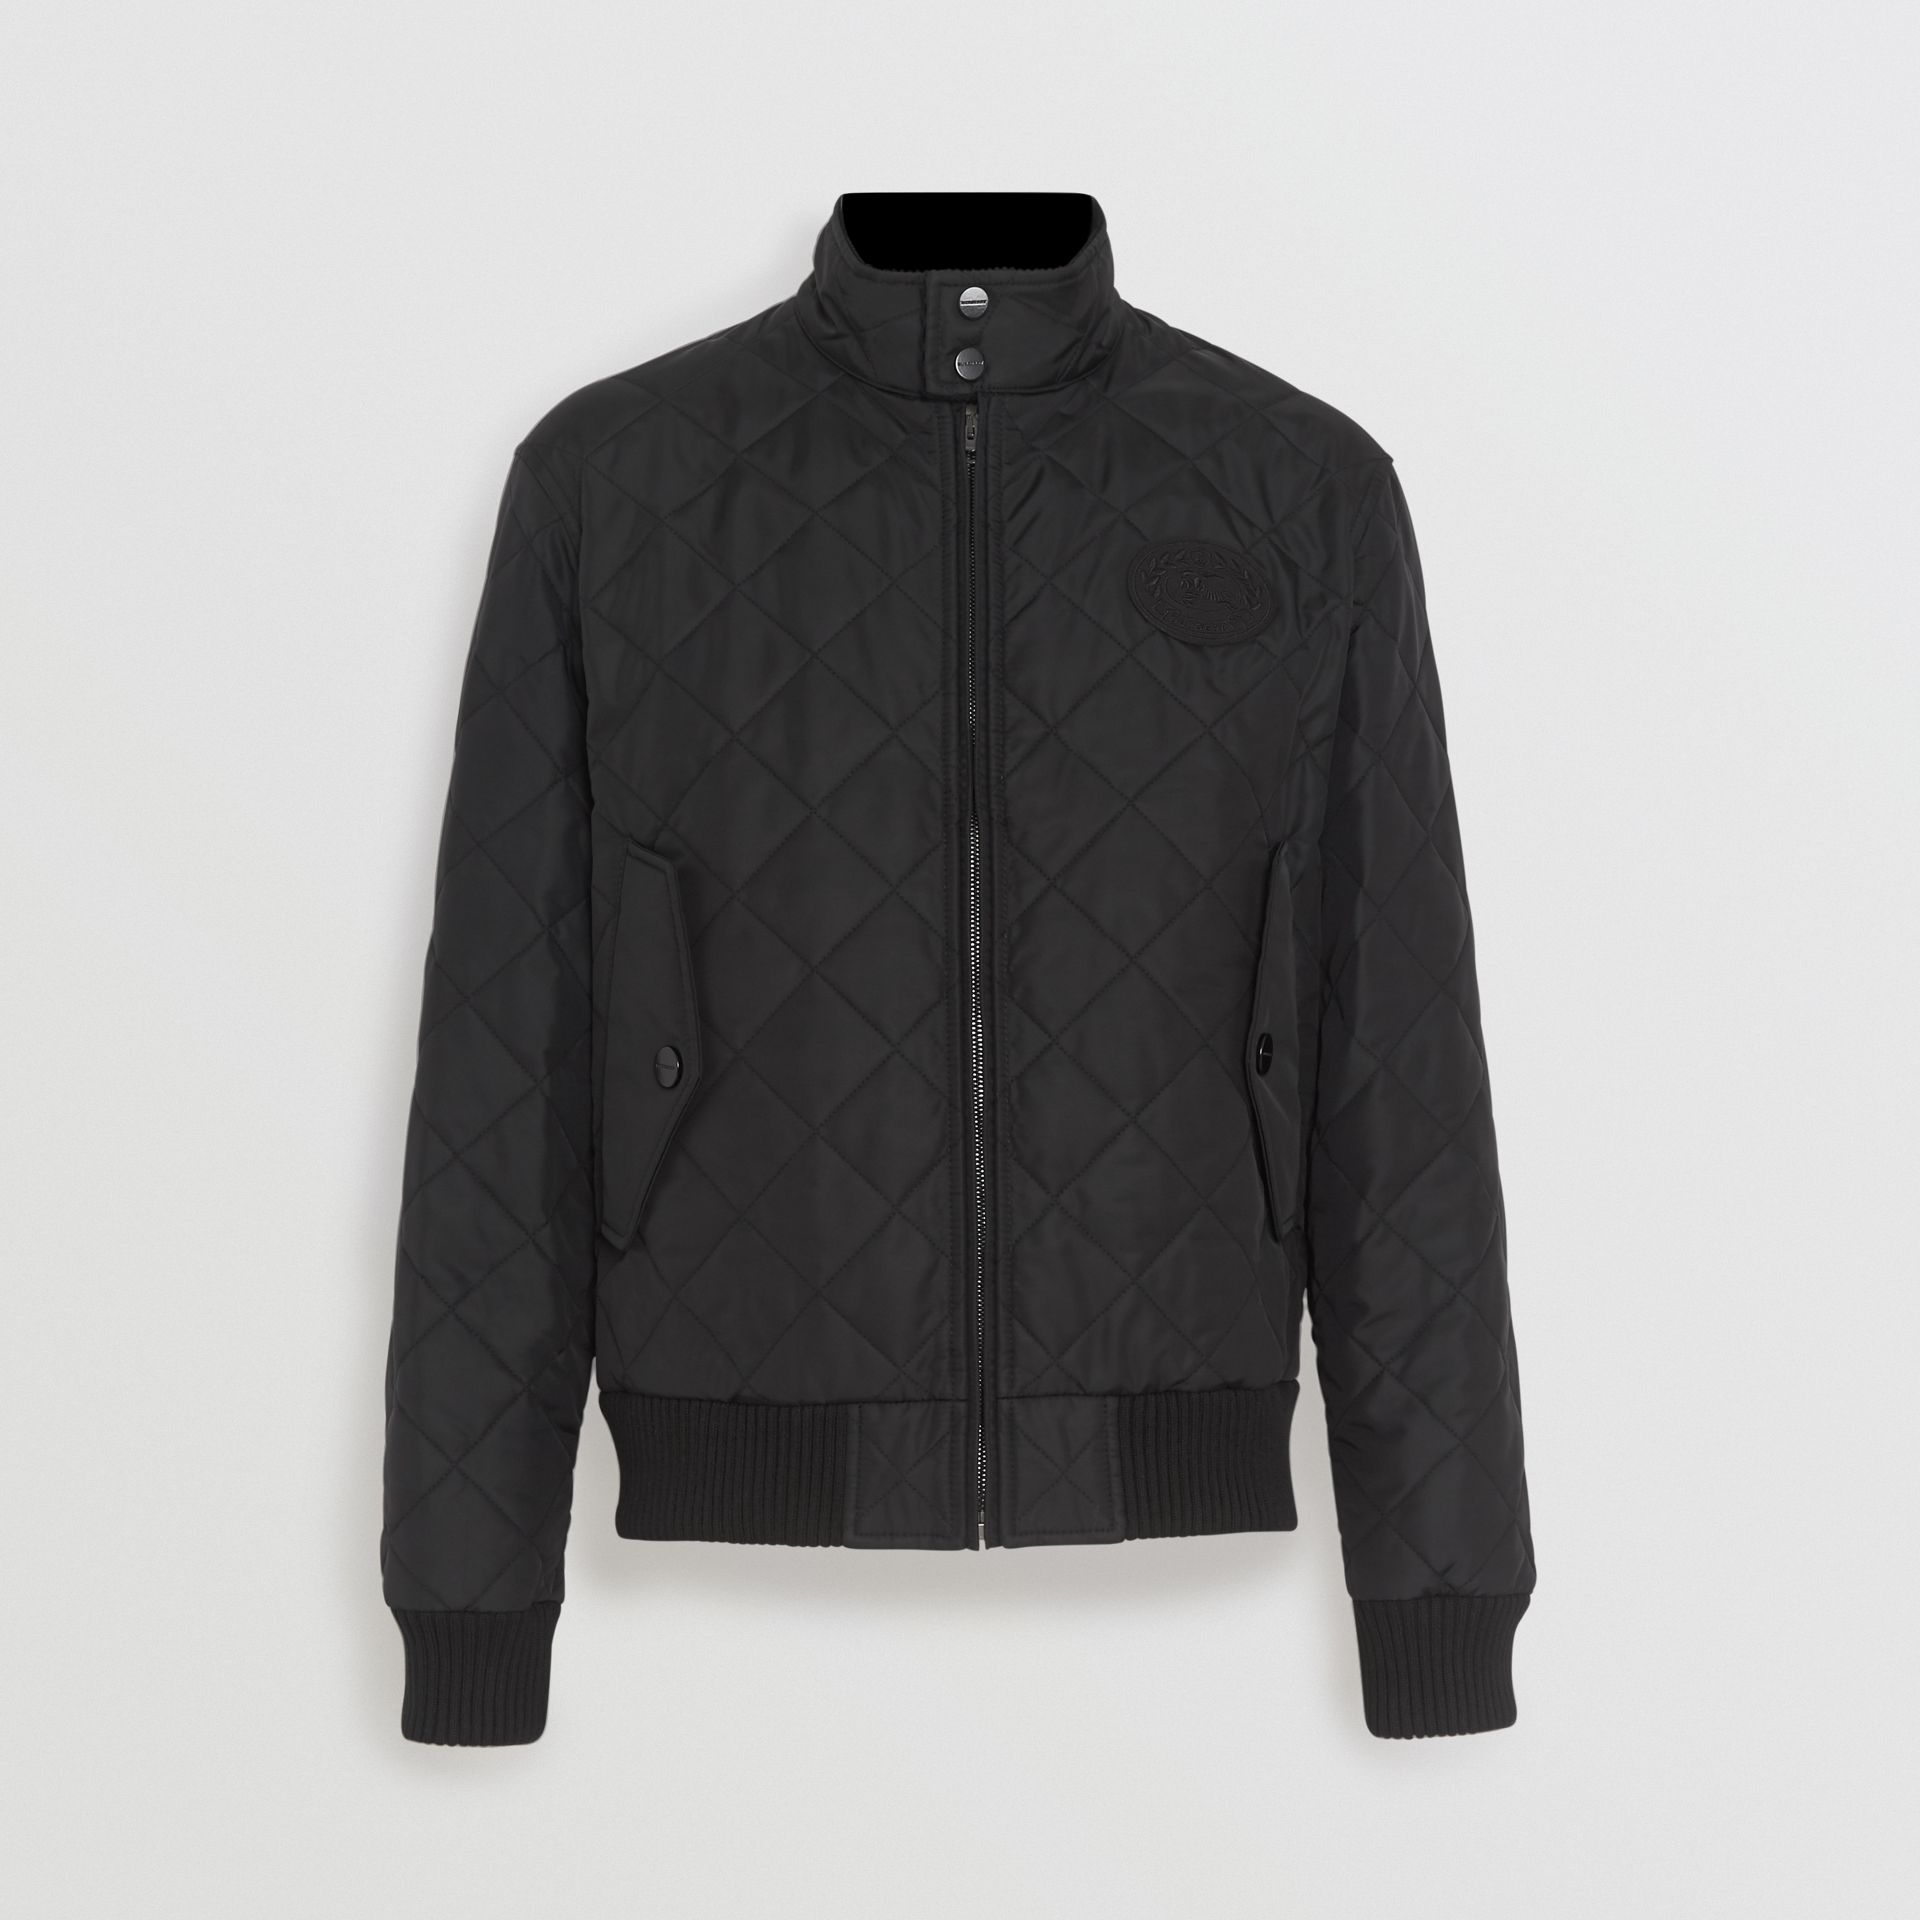 Veste Harrington thermorégulée matelassée (Noir) - Homme | Burberry Canada - photo de la galerie 6